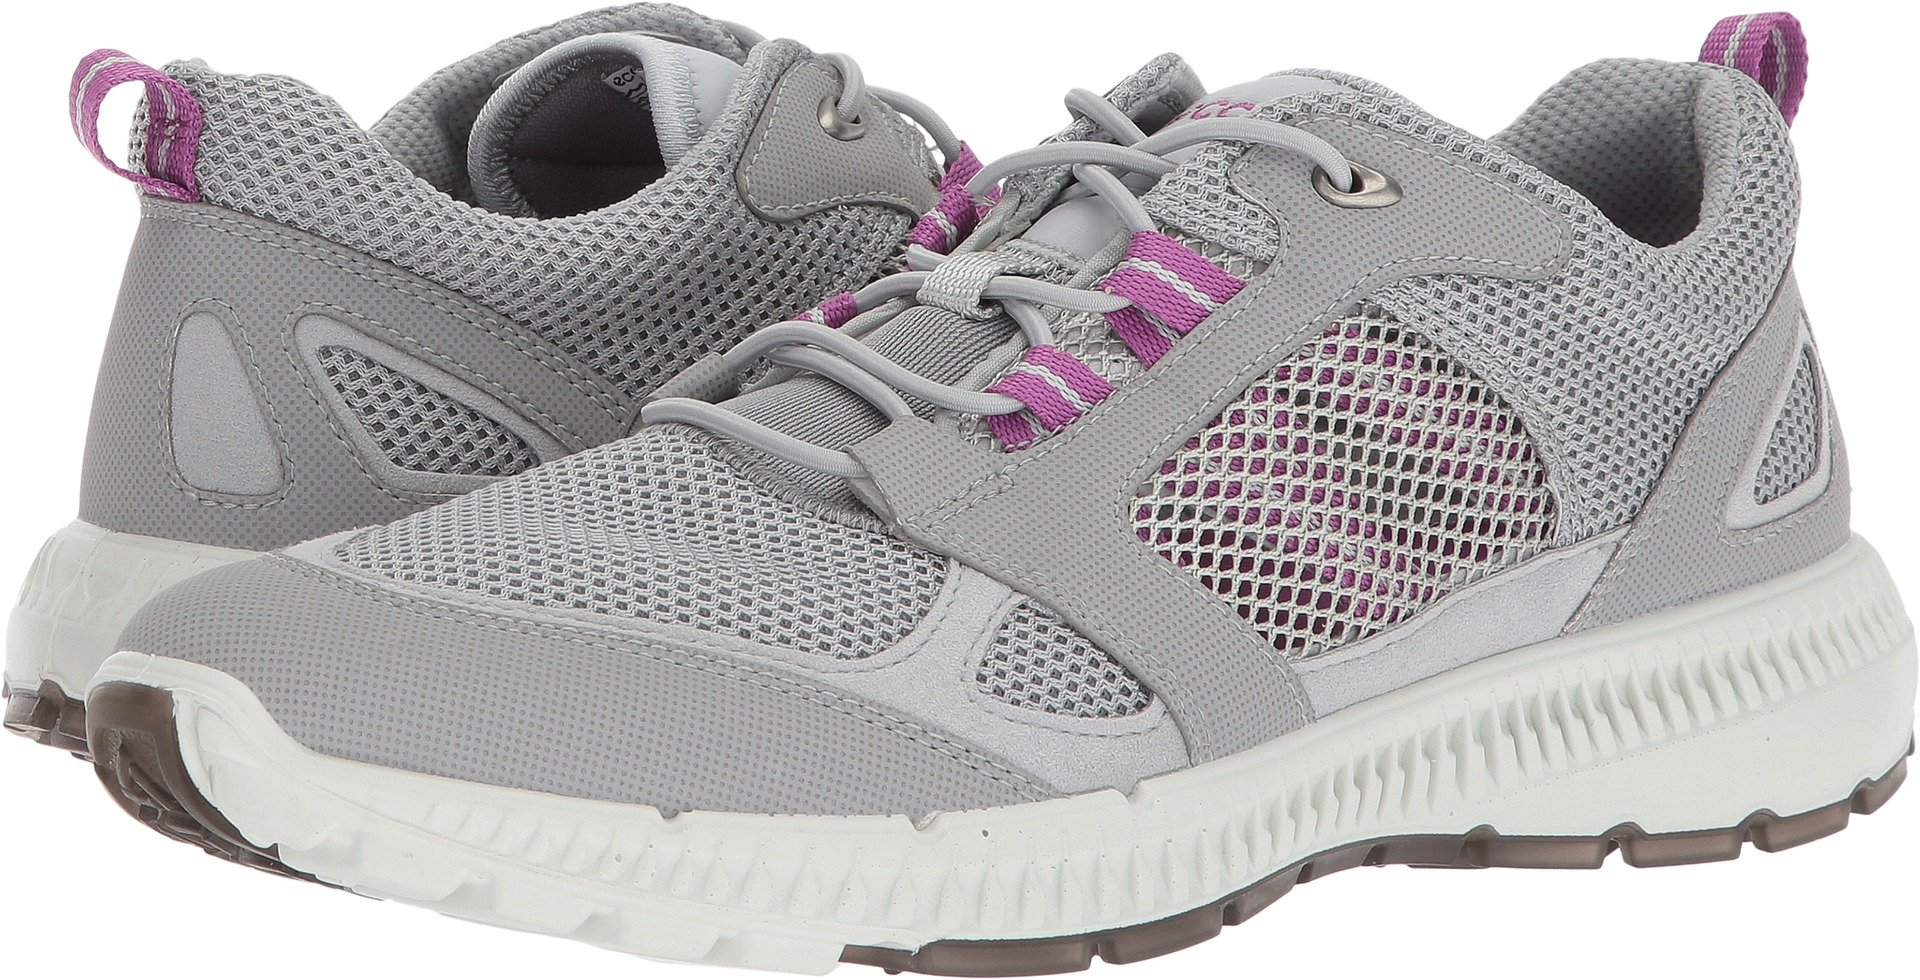 ECCO Women's Terracruise II Trail Runner, Silver Grey/Silver Grey, 40 EU/9-9.5 M US